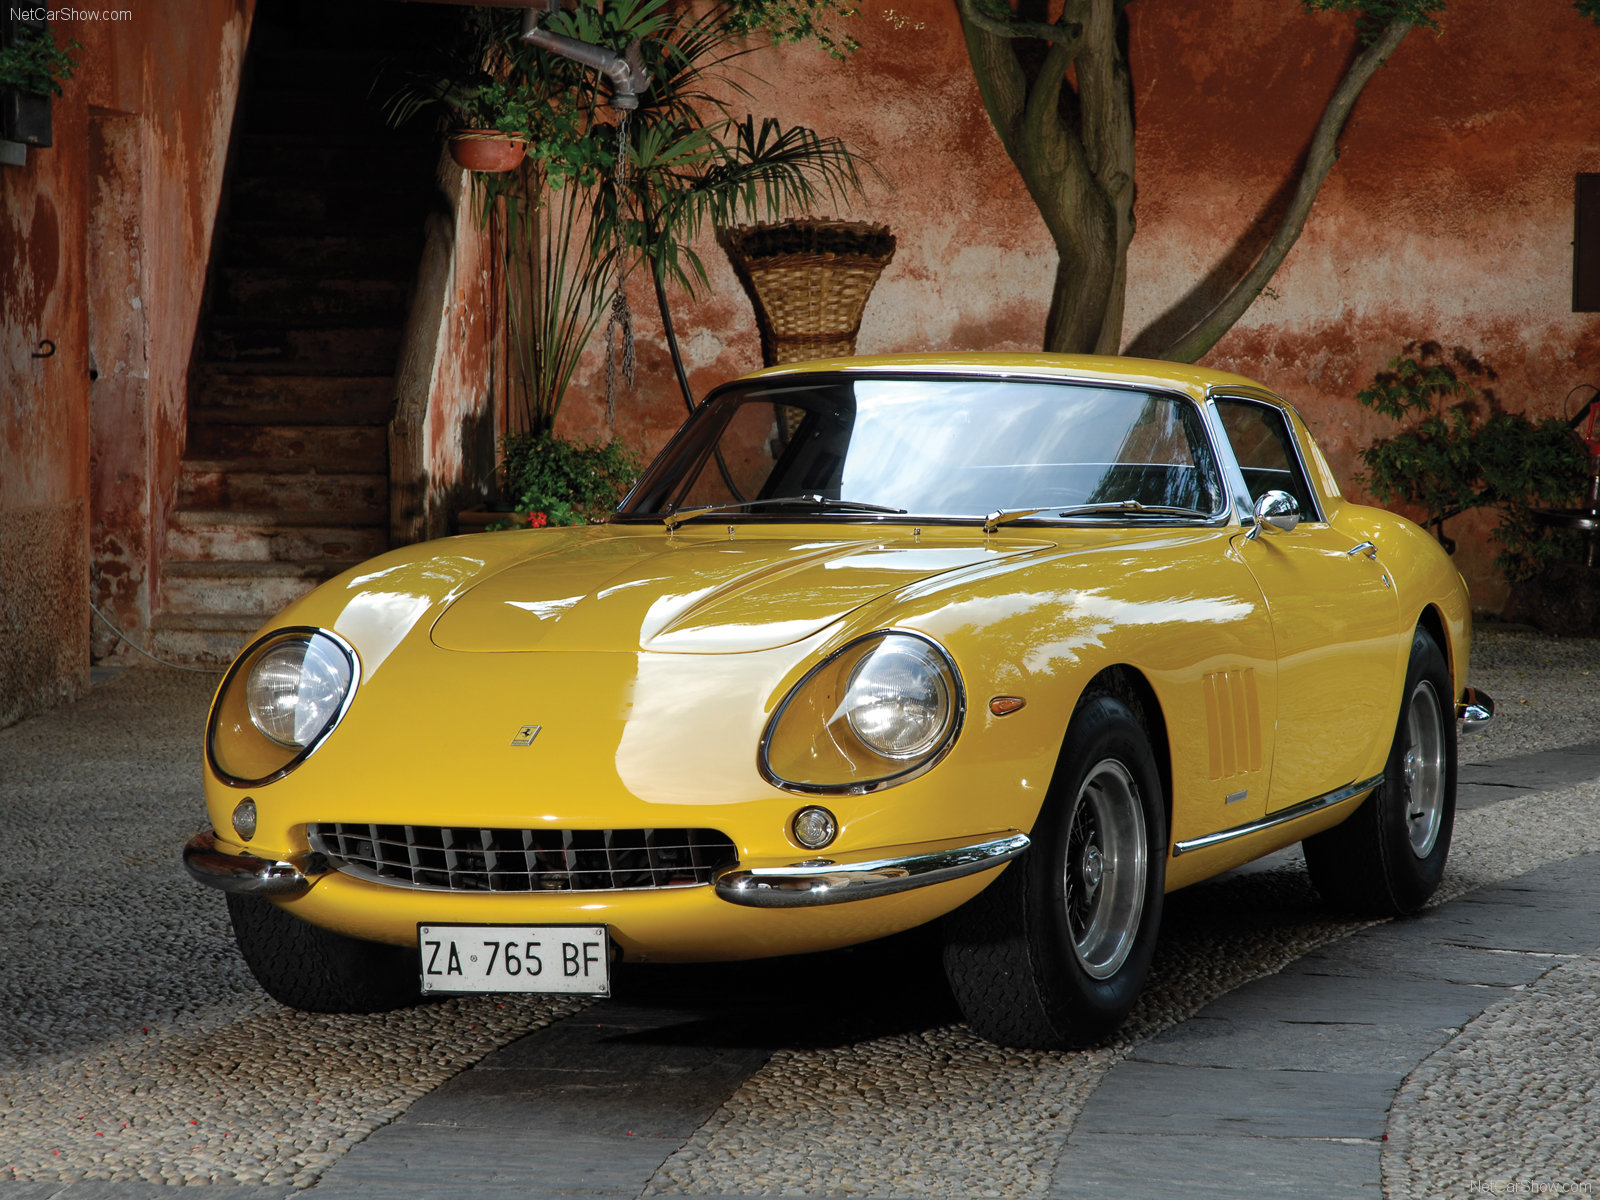 ferrari 275 gtb 4 photos photogallery with 5 pics. Black Bedroom Furniture Sets. Home Design Ideas